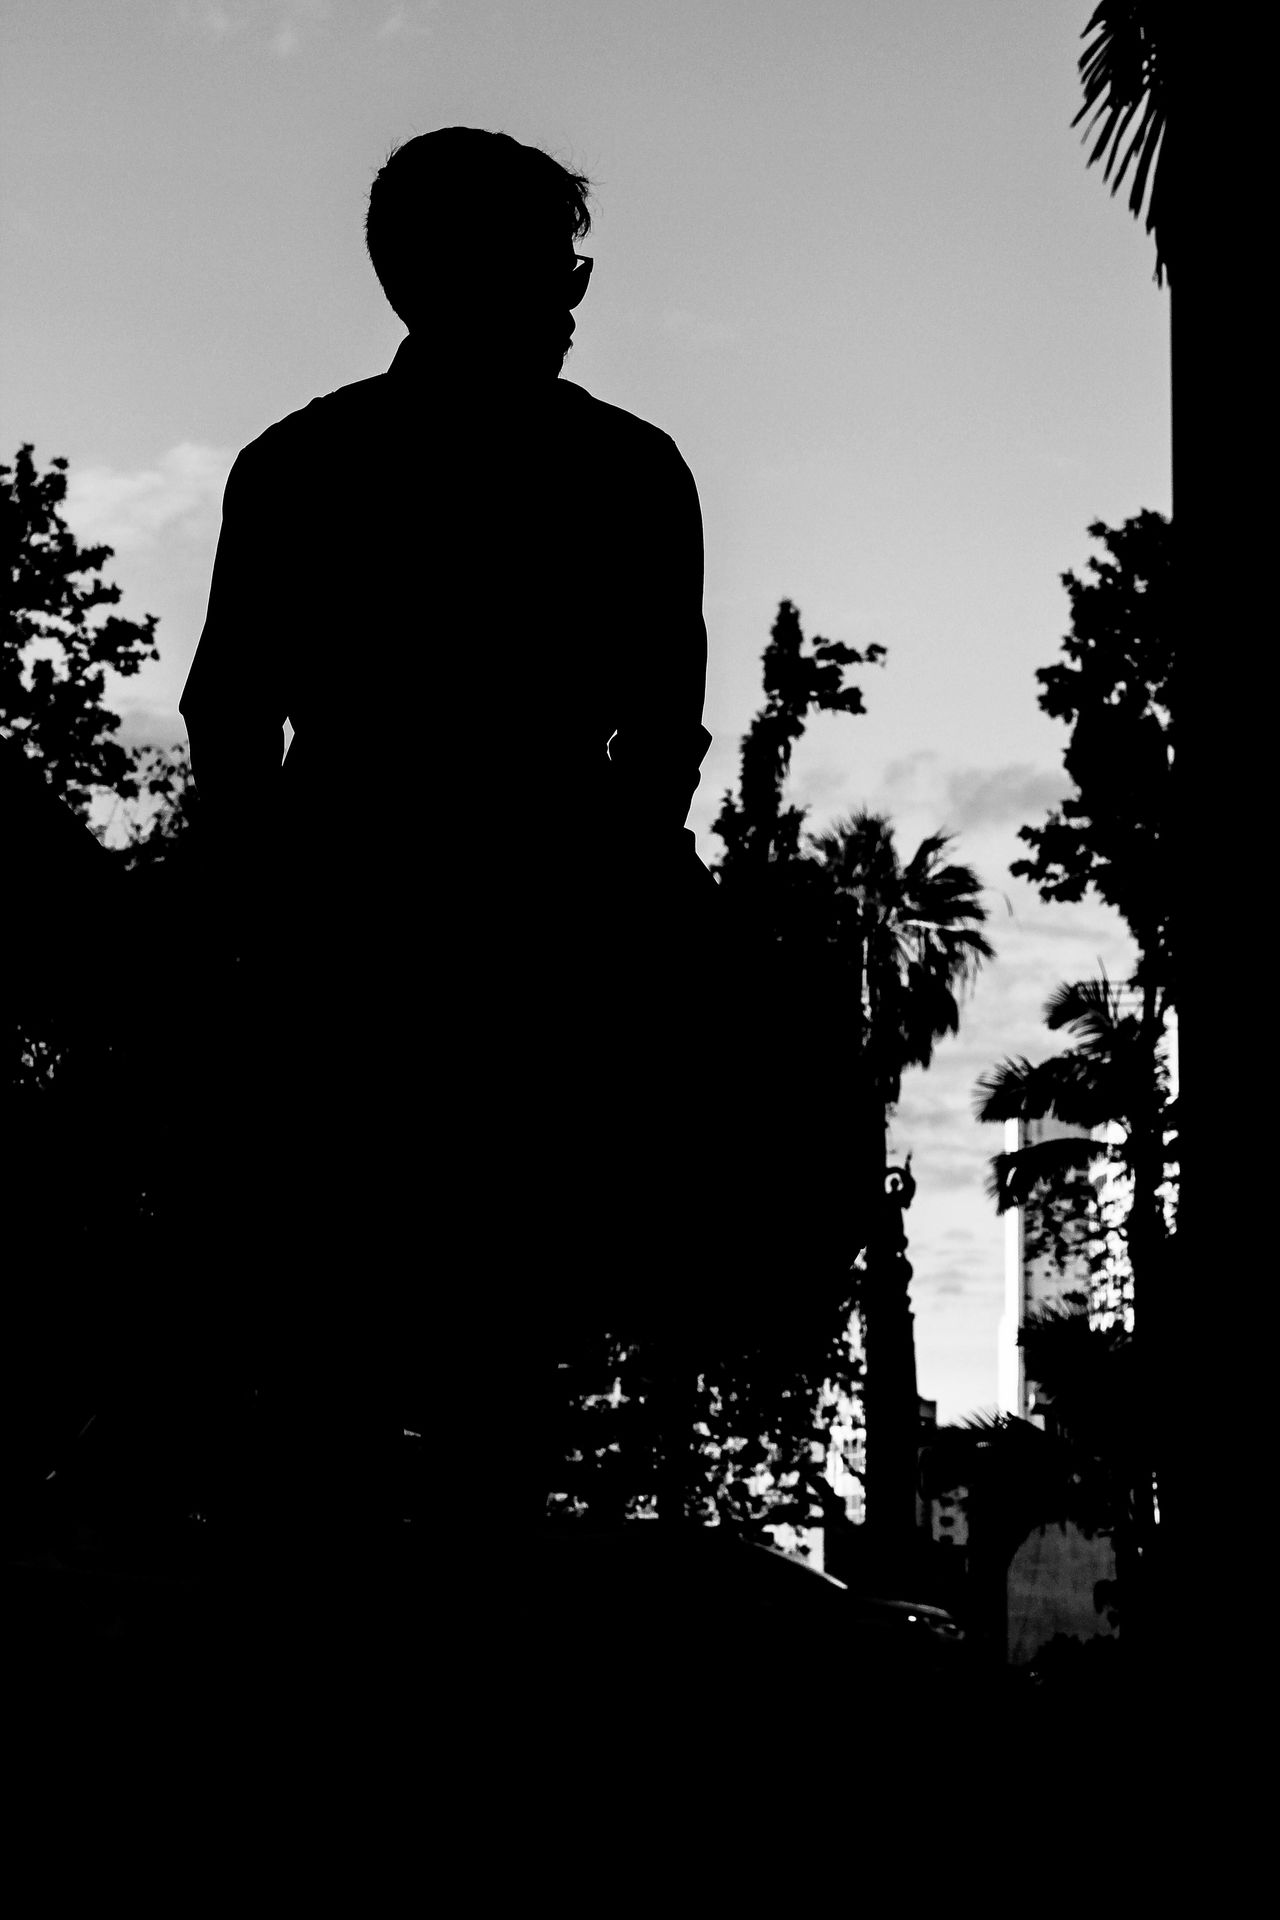 Figure It Out. Urban The Street Photographer - 2017 EyeEm Awards Canon Rebel T3 Urban Landscape One Person Silhouette One Man Only People Outdoors Standing Real People Shadows & Lights The Great Outdoors - 2017 EyeEm Awards Black & White Textures And Surfaces The Great Outdoors - 2017 EyeEm Awards The Street Photographer - 2017 EyeEm Awards Place Of Heart